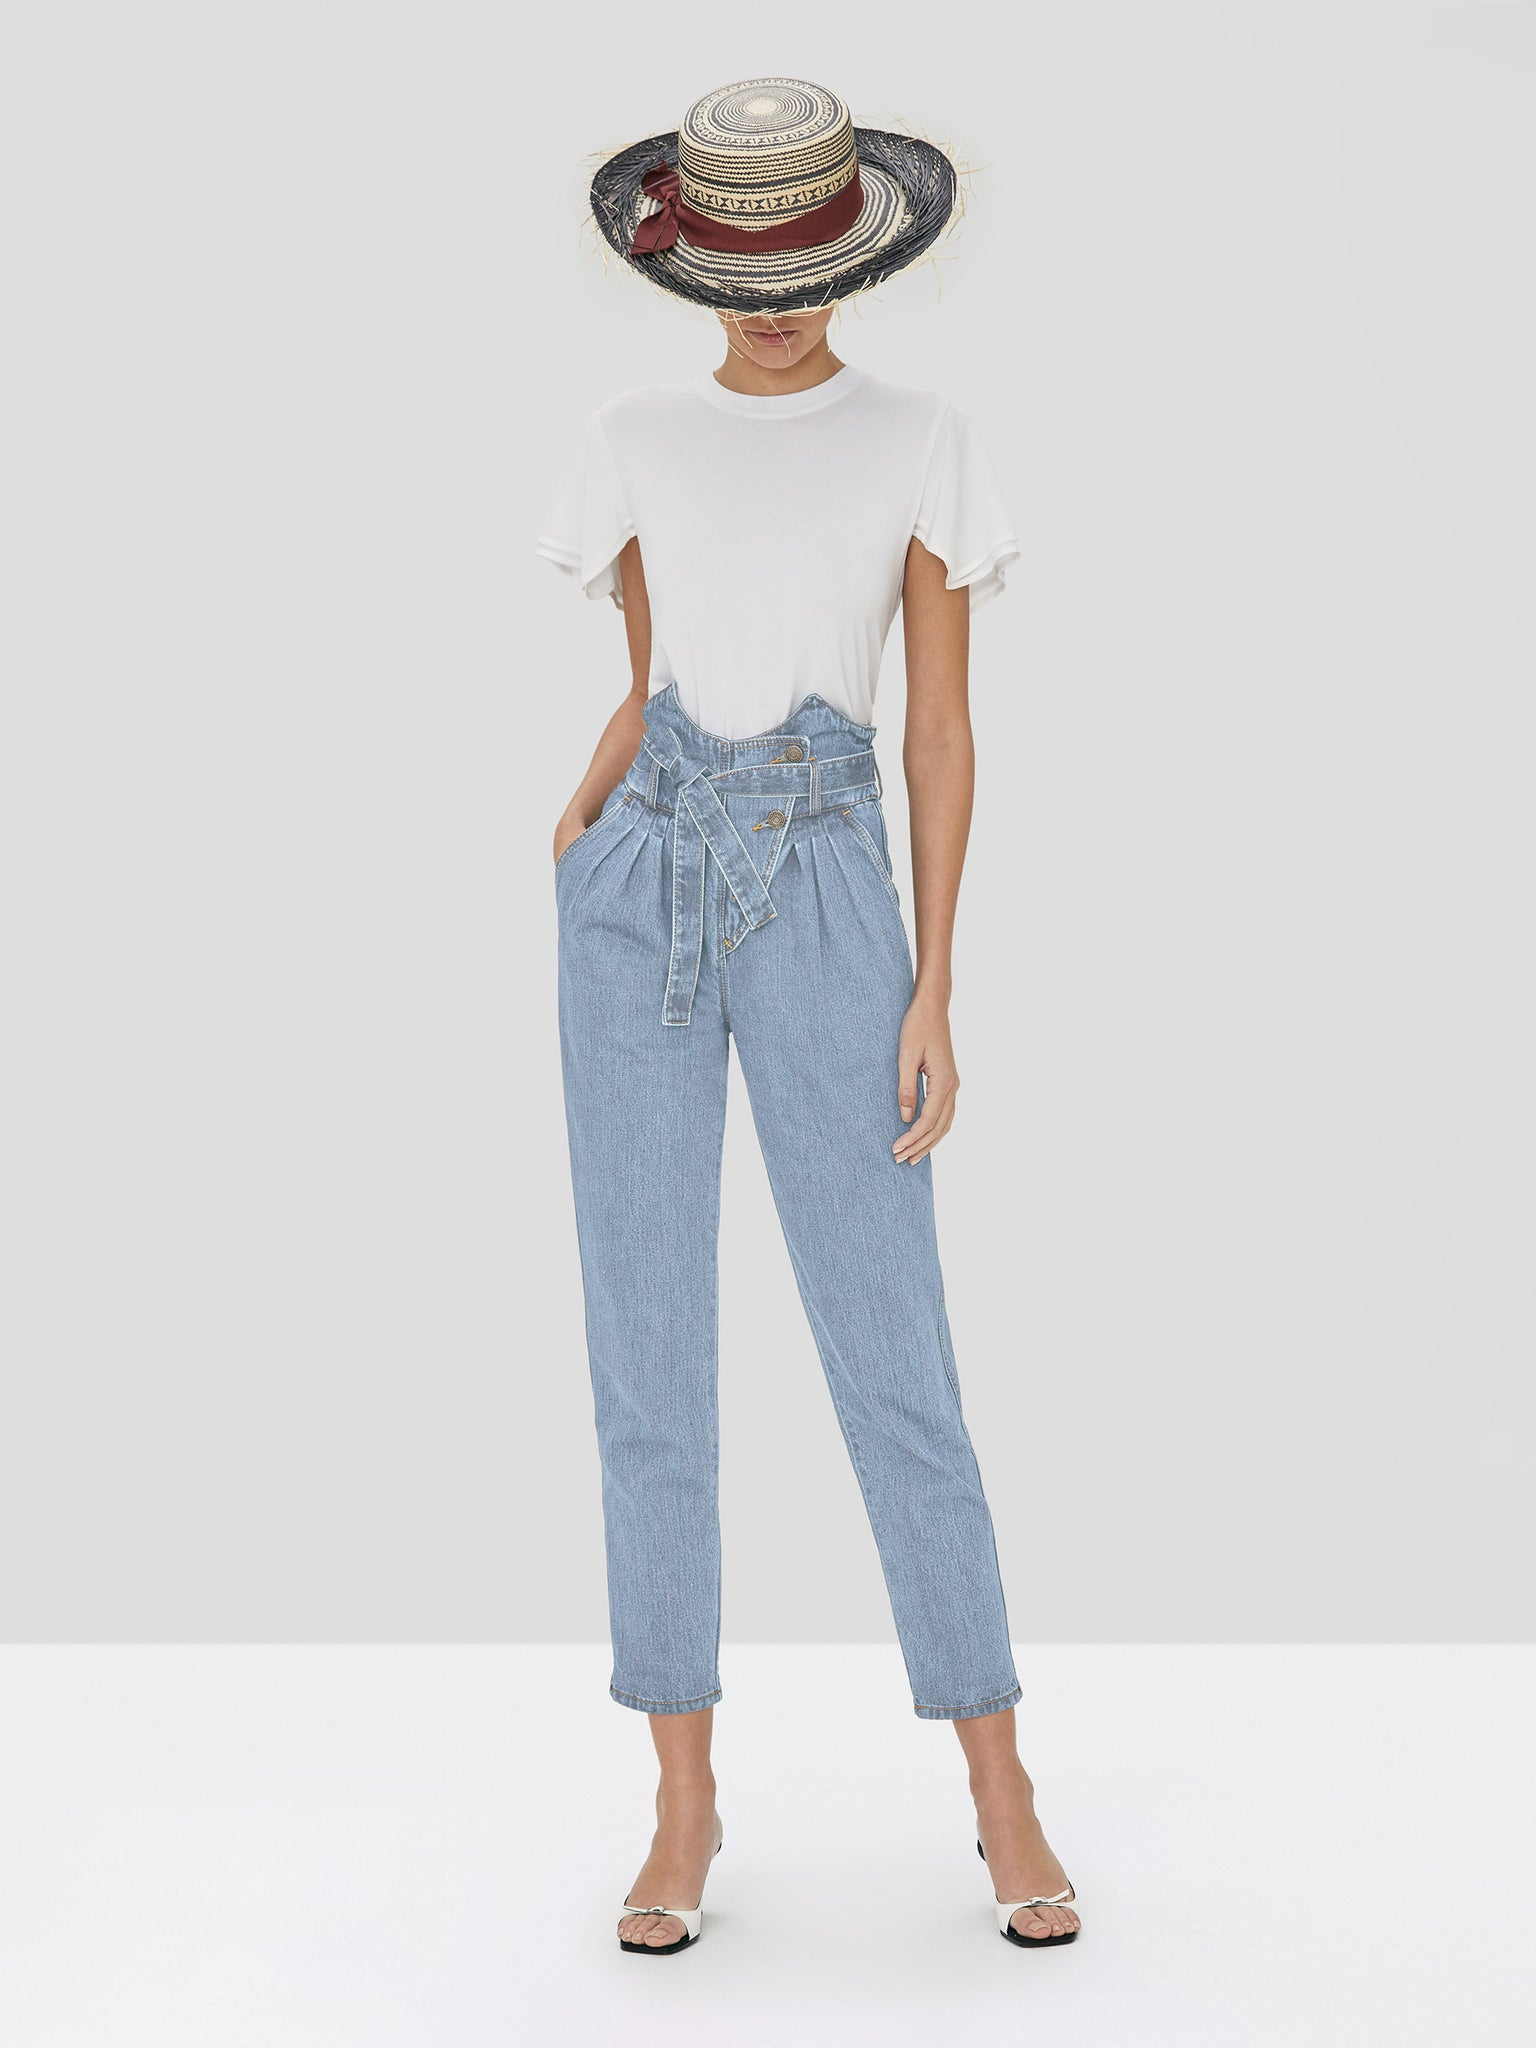 Alexis Ronson Top in White and Stannis Denim Pant in Light Denim from Spring Summer 2020